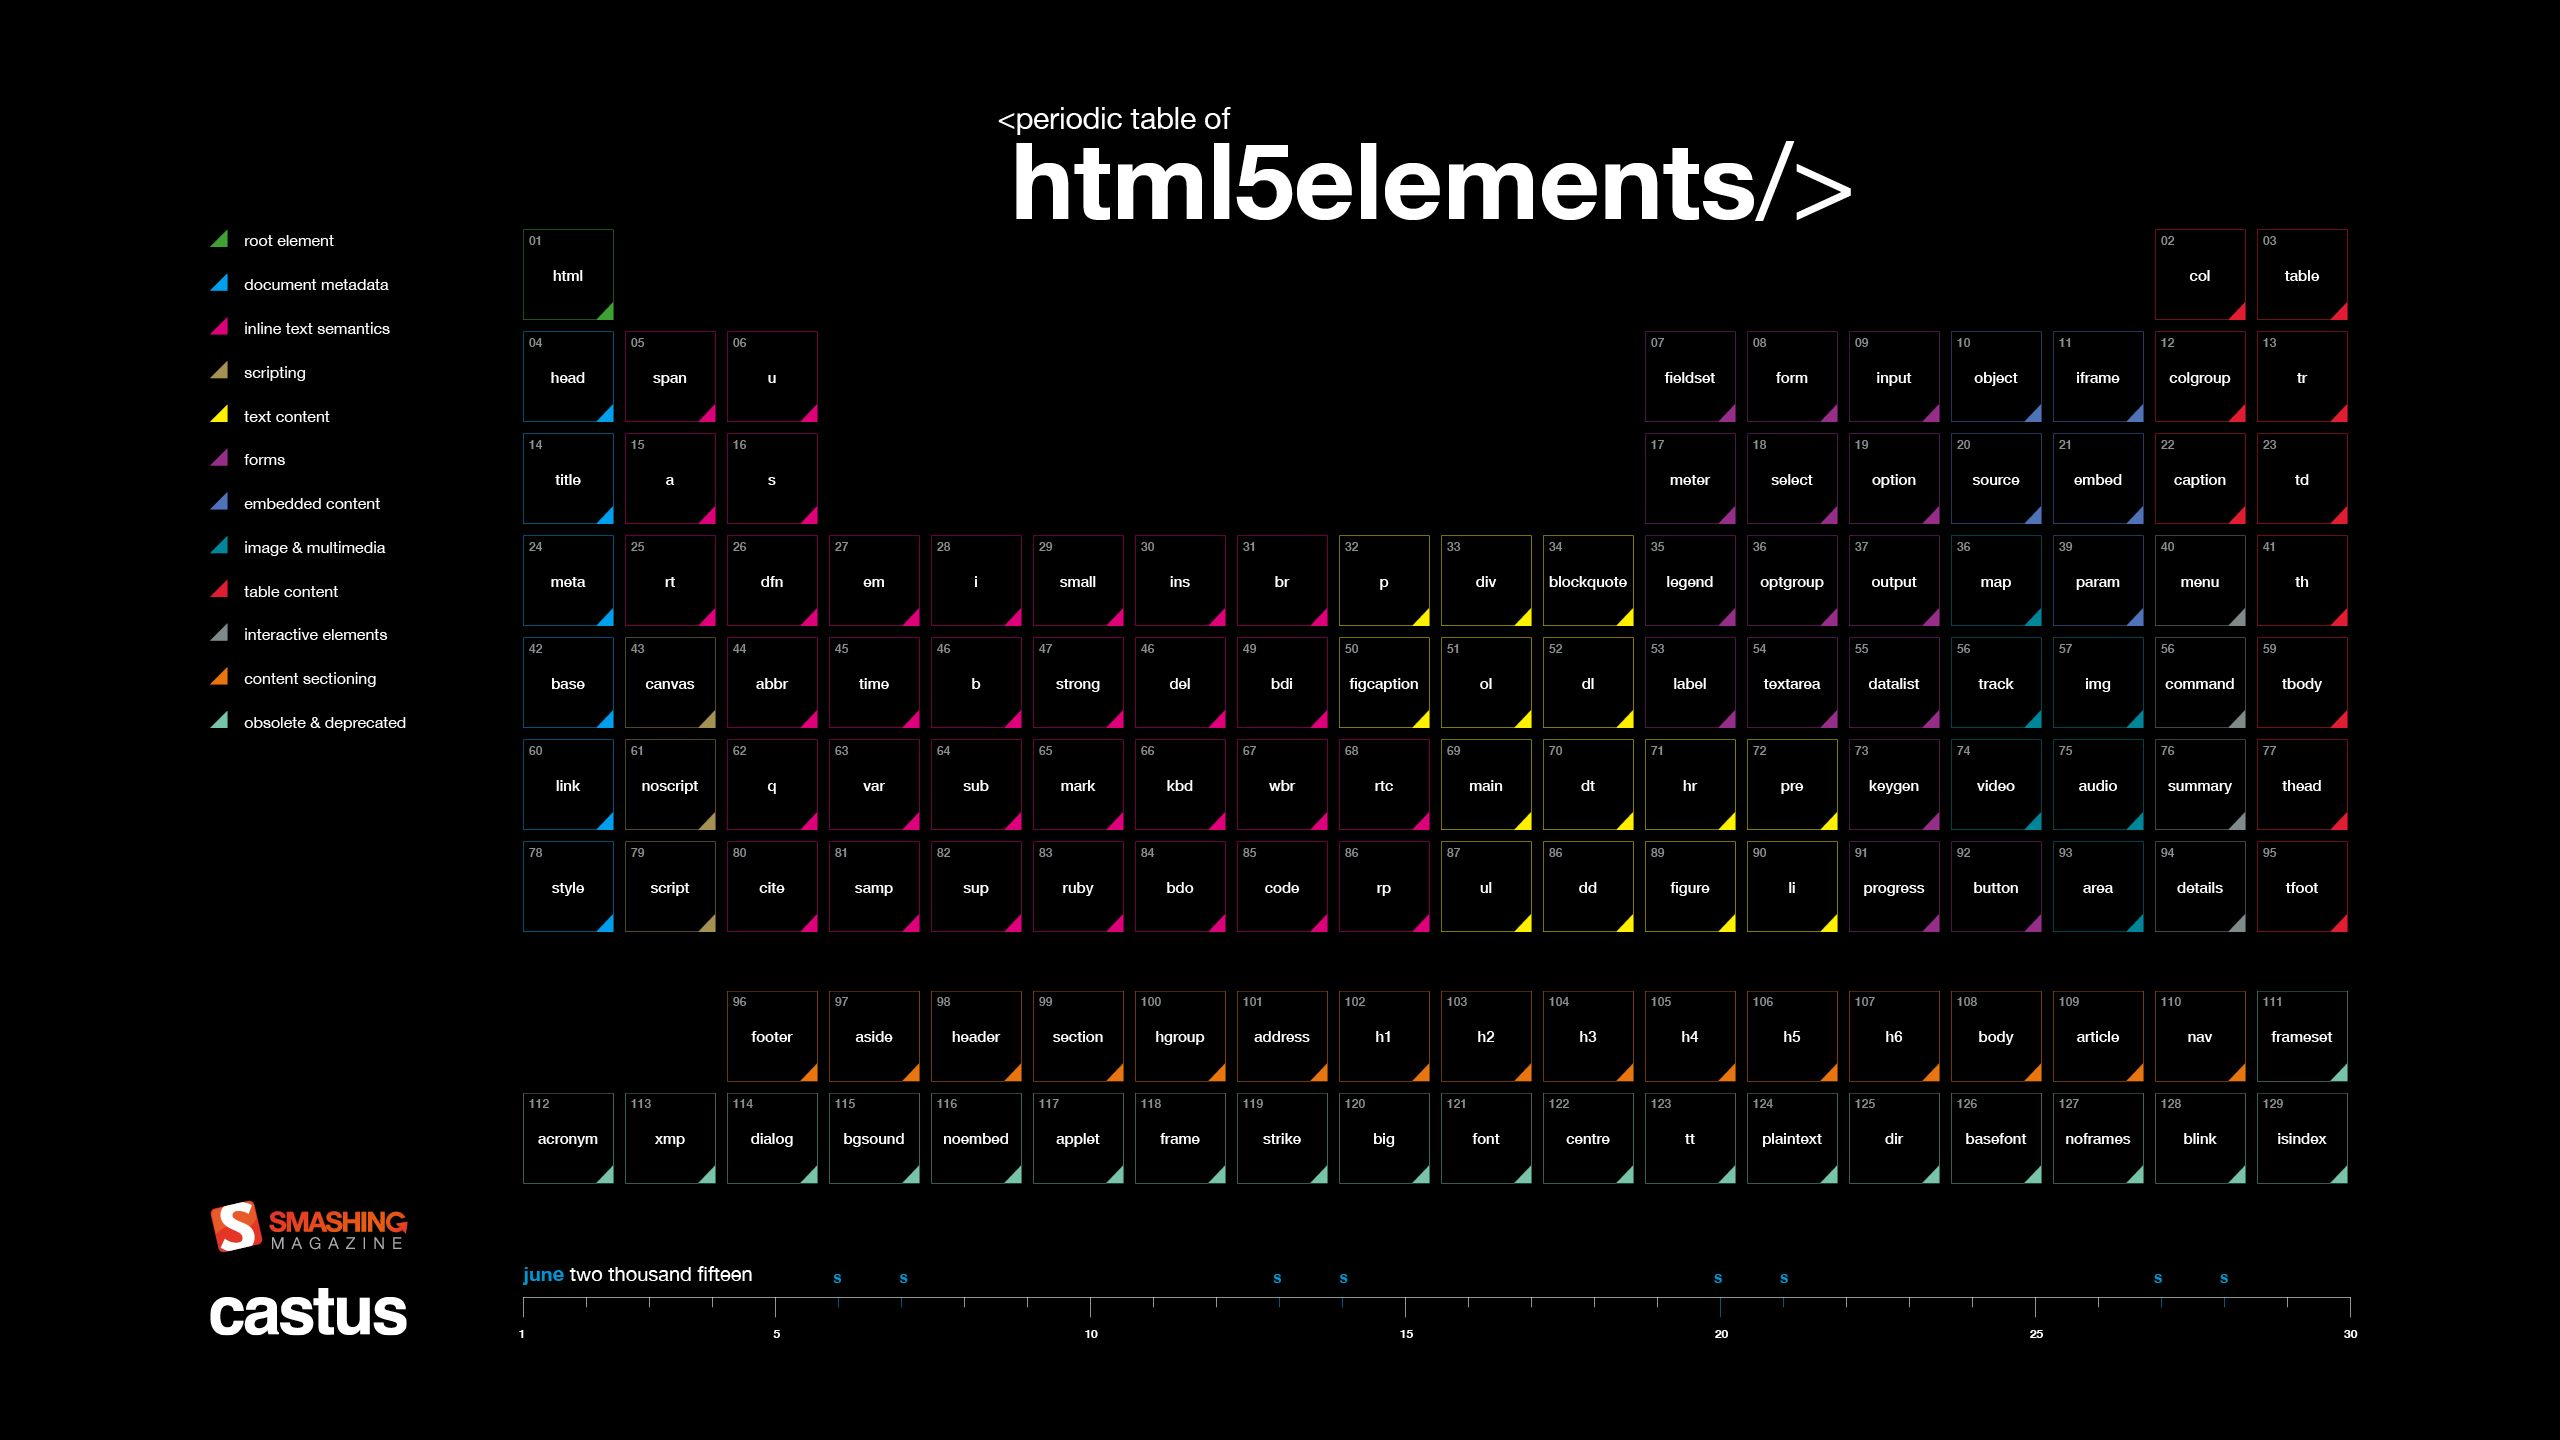 June 15 periodic table of html5 elements cal 2560x1440g 2560 june 15 periodic table of html5 elements cal 2560x1440g 25601440 tom pinterest toms gamestrikefo Image collections